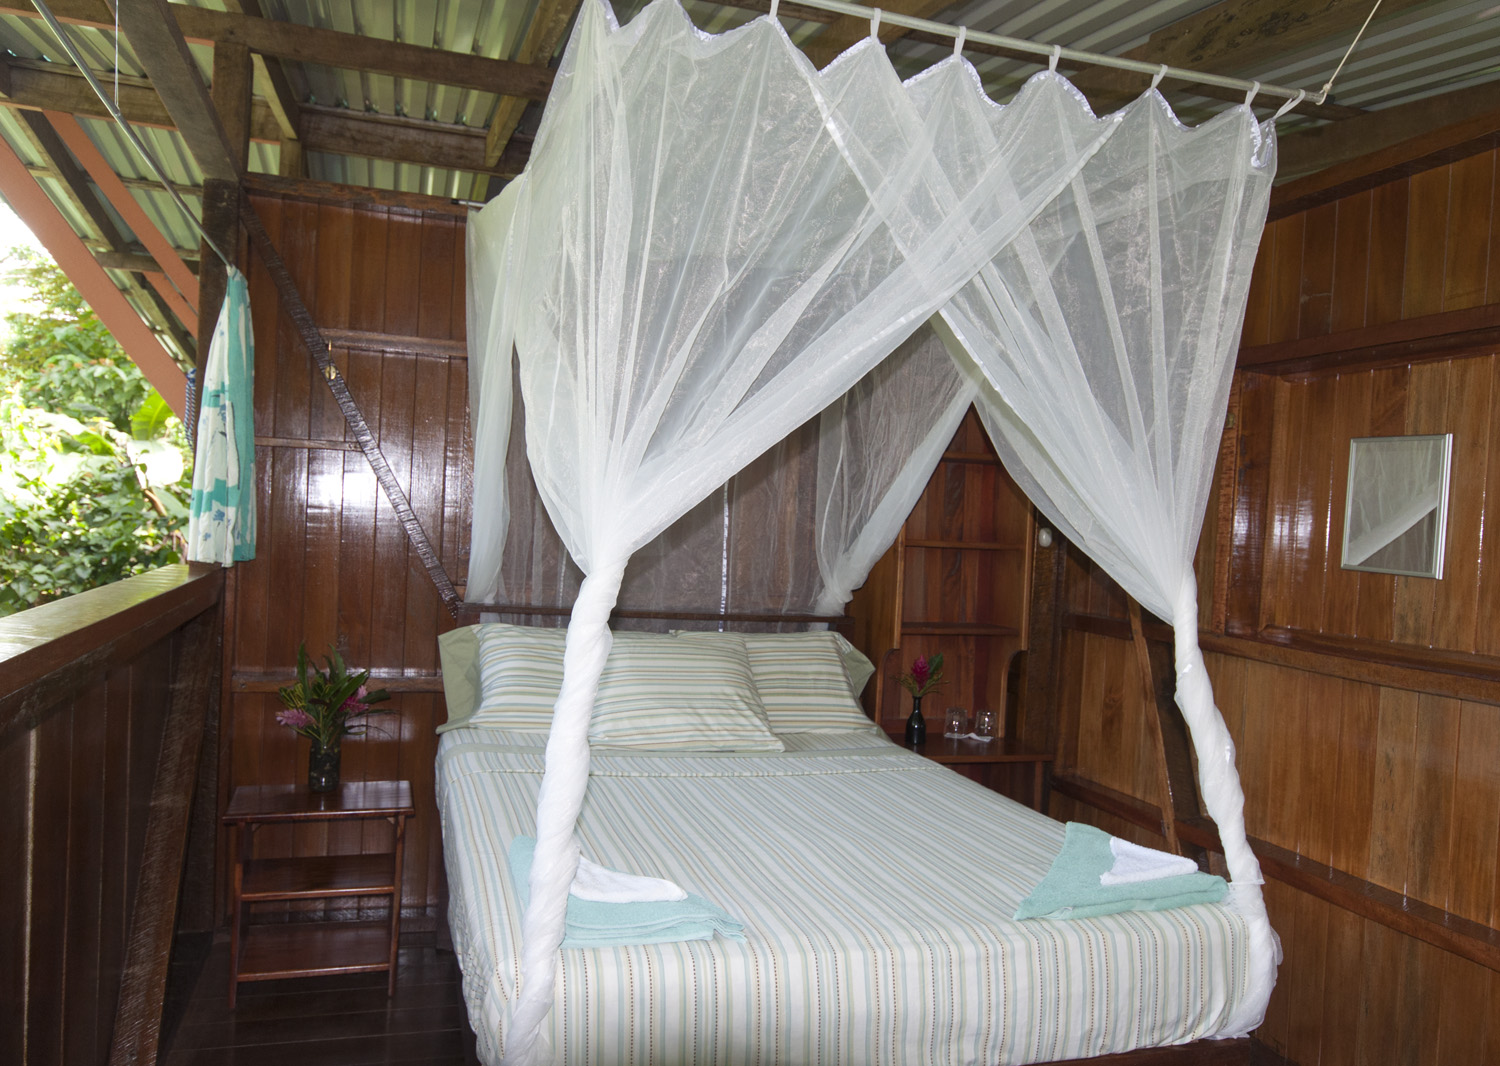 treehouse accommodations and lodge rooms, Puerto Jimenez, Osa Peninsula, Corcovado